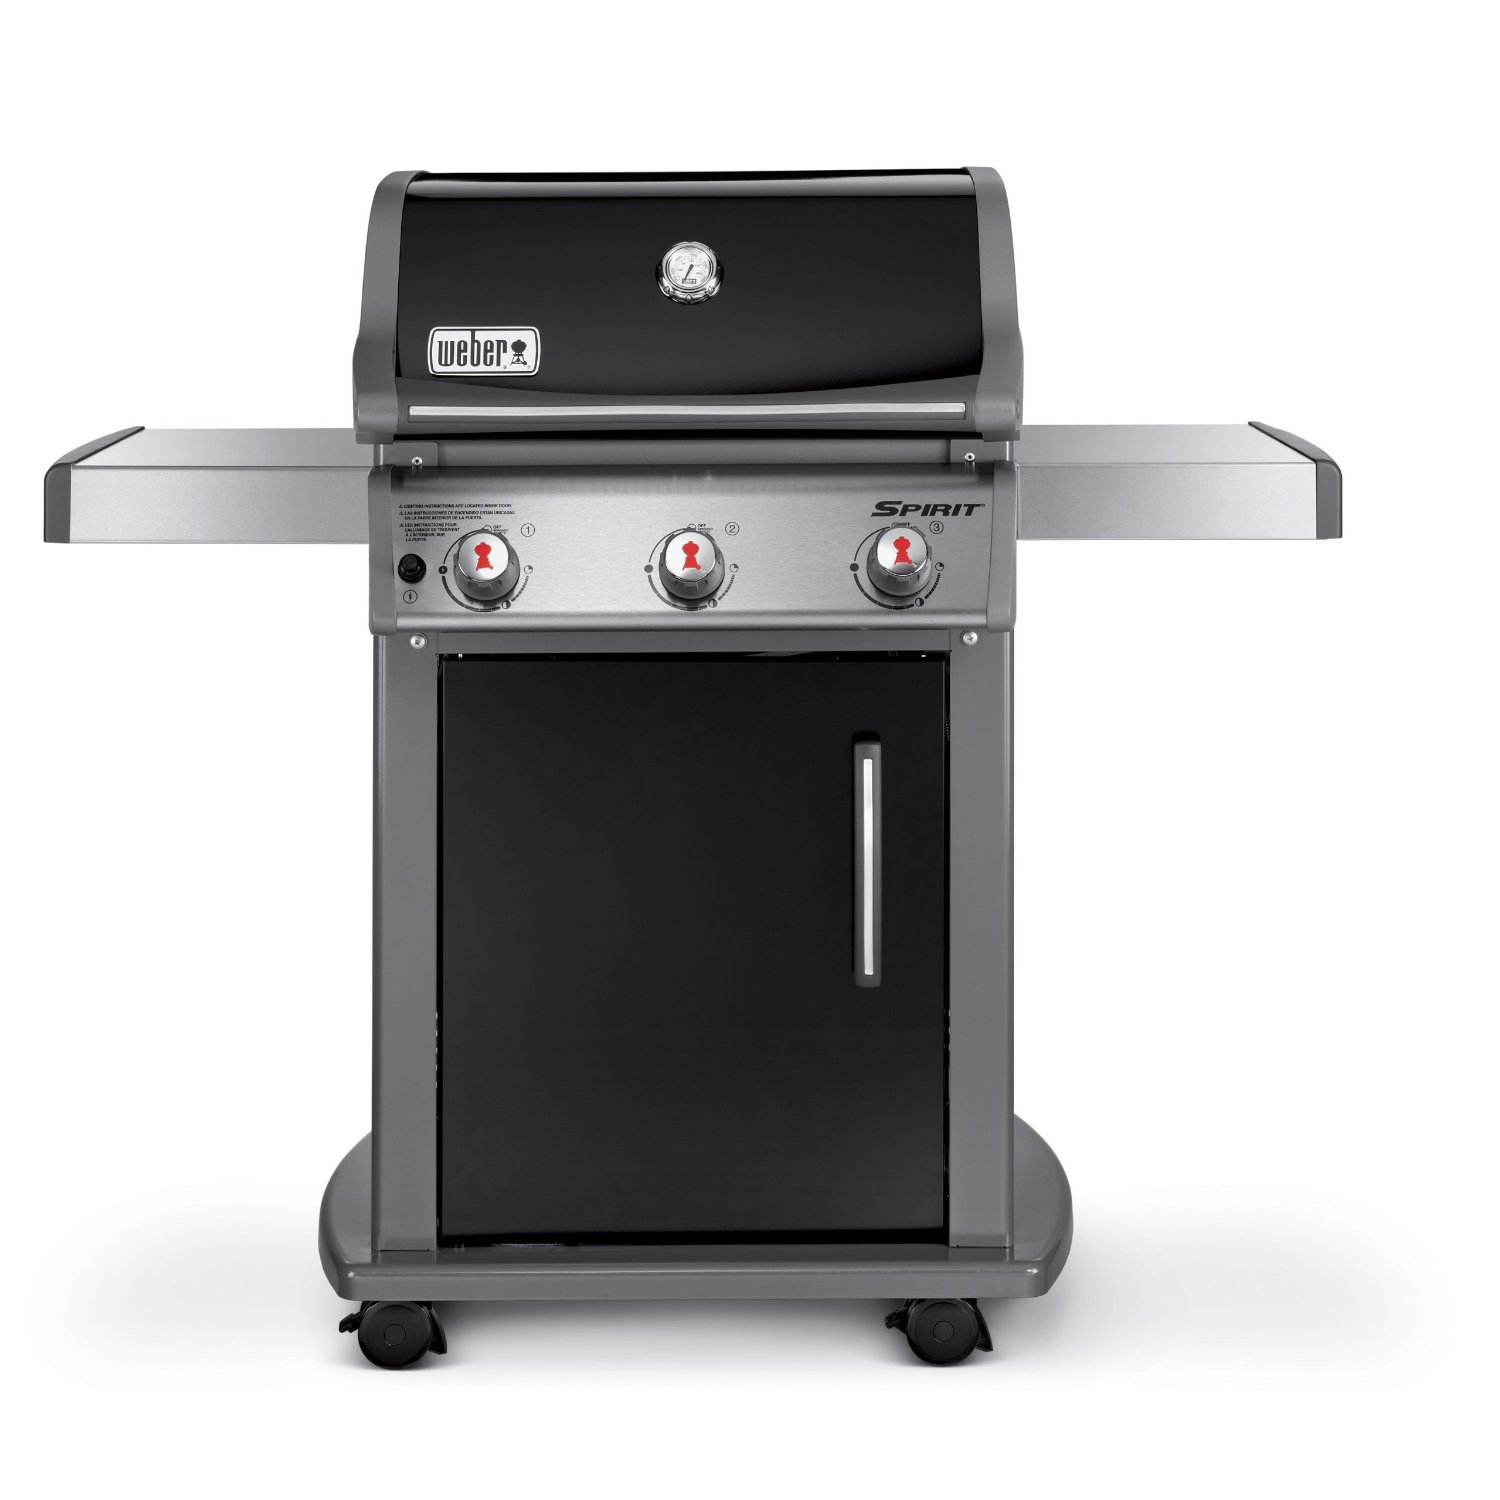 Key features of the best gas grill